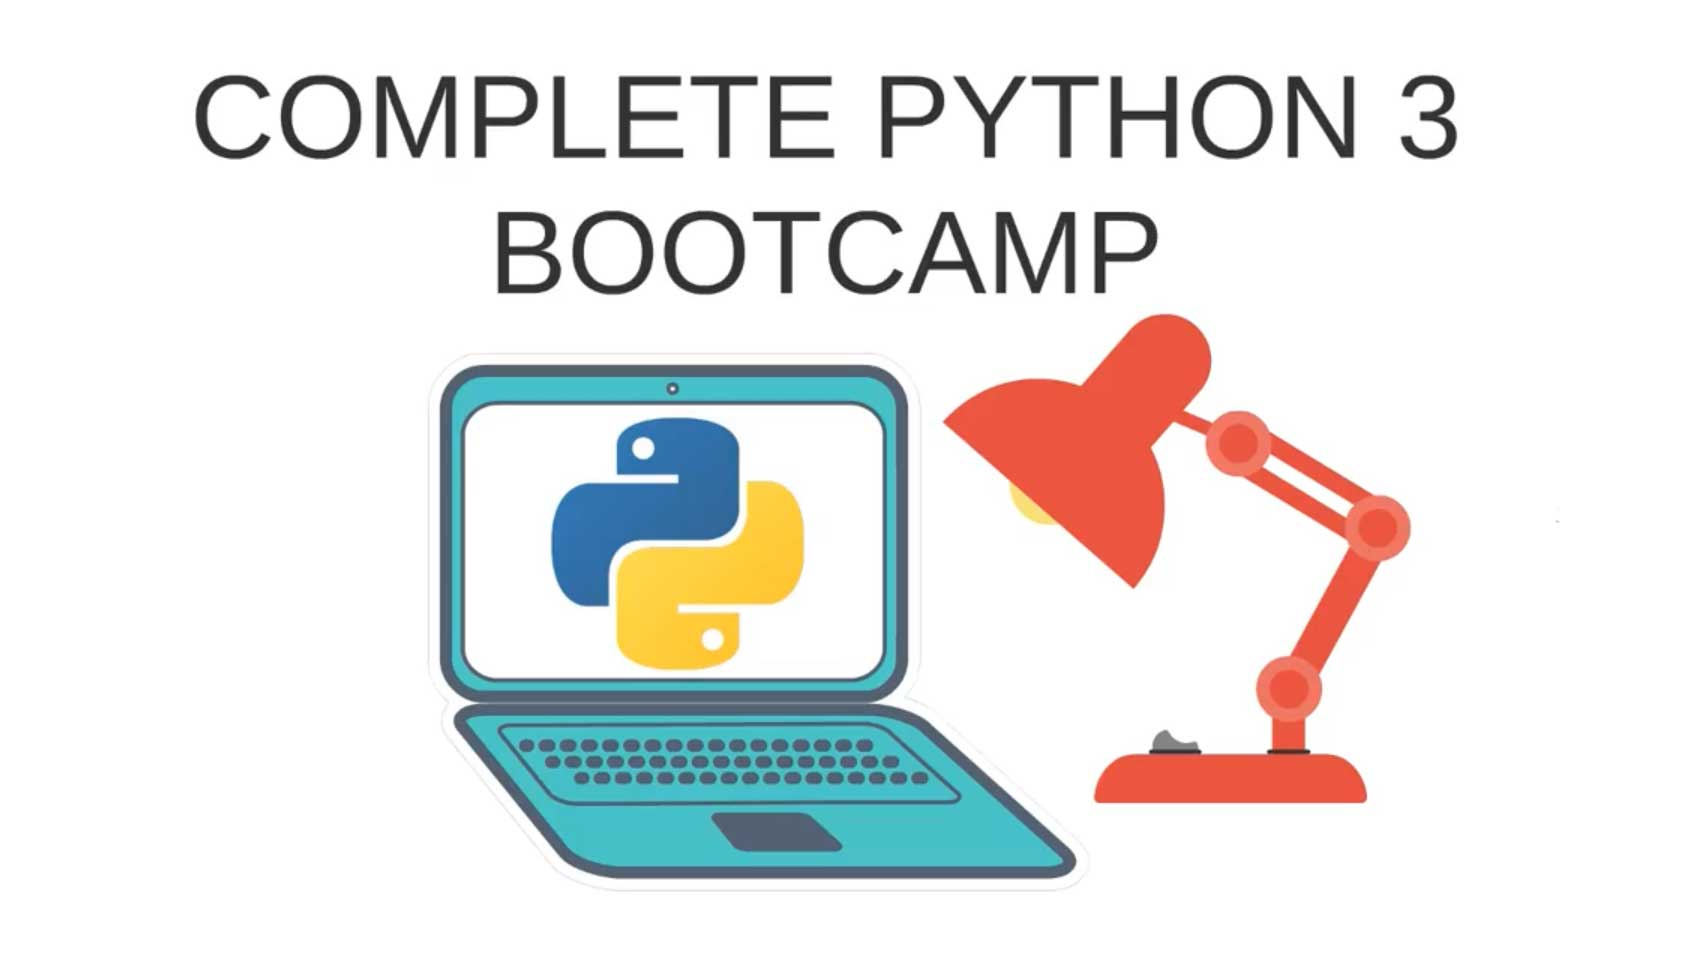 Complete Python Bootcamp: Go from zero to hero in Python 3 Free Course site udemy  download udemy paid course fro free and be smart